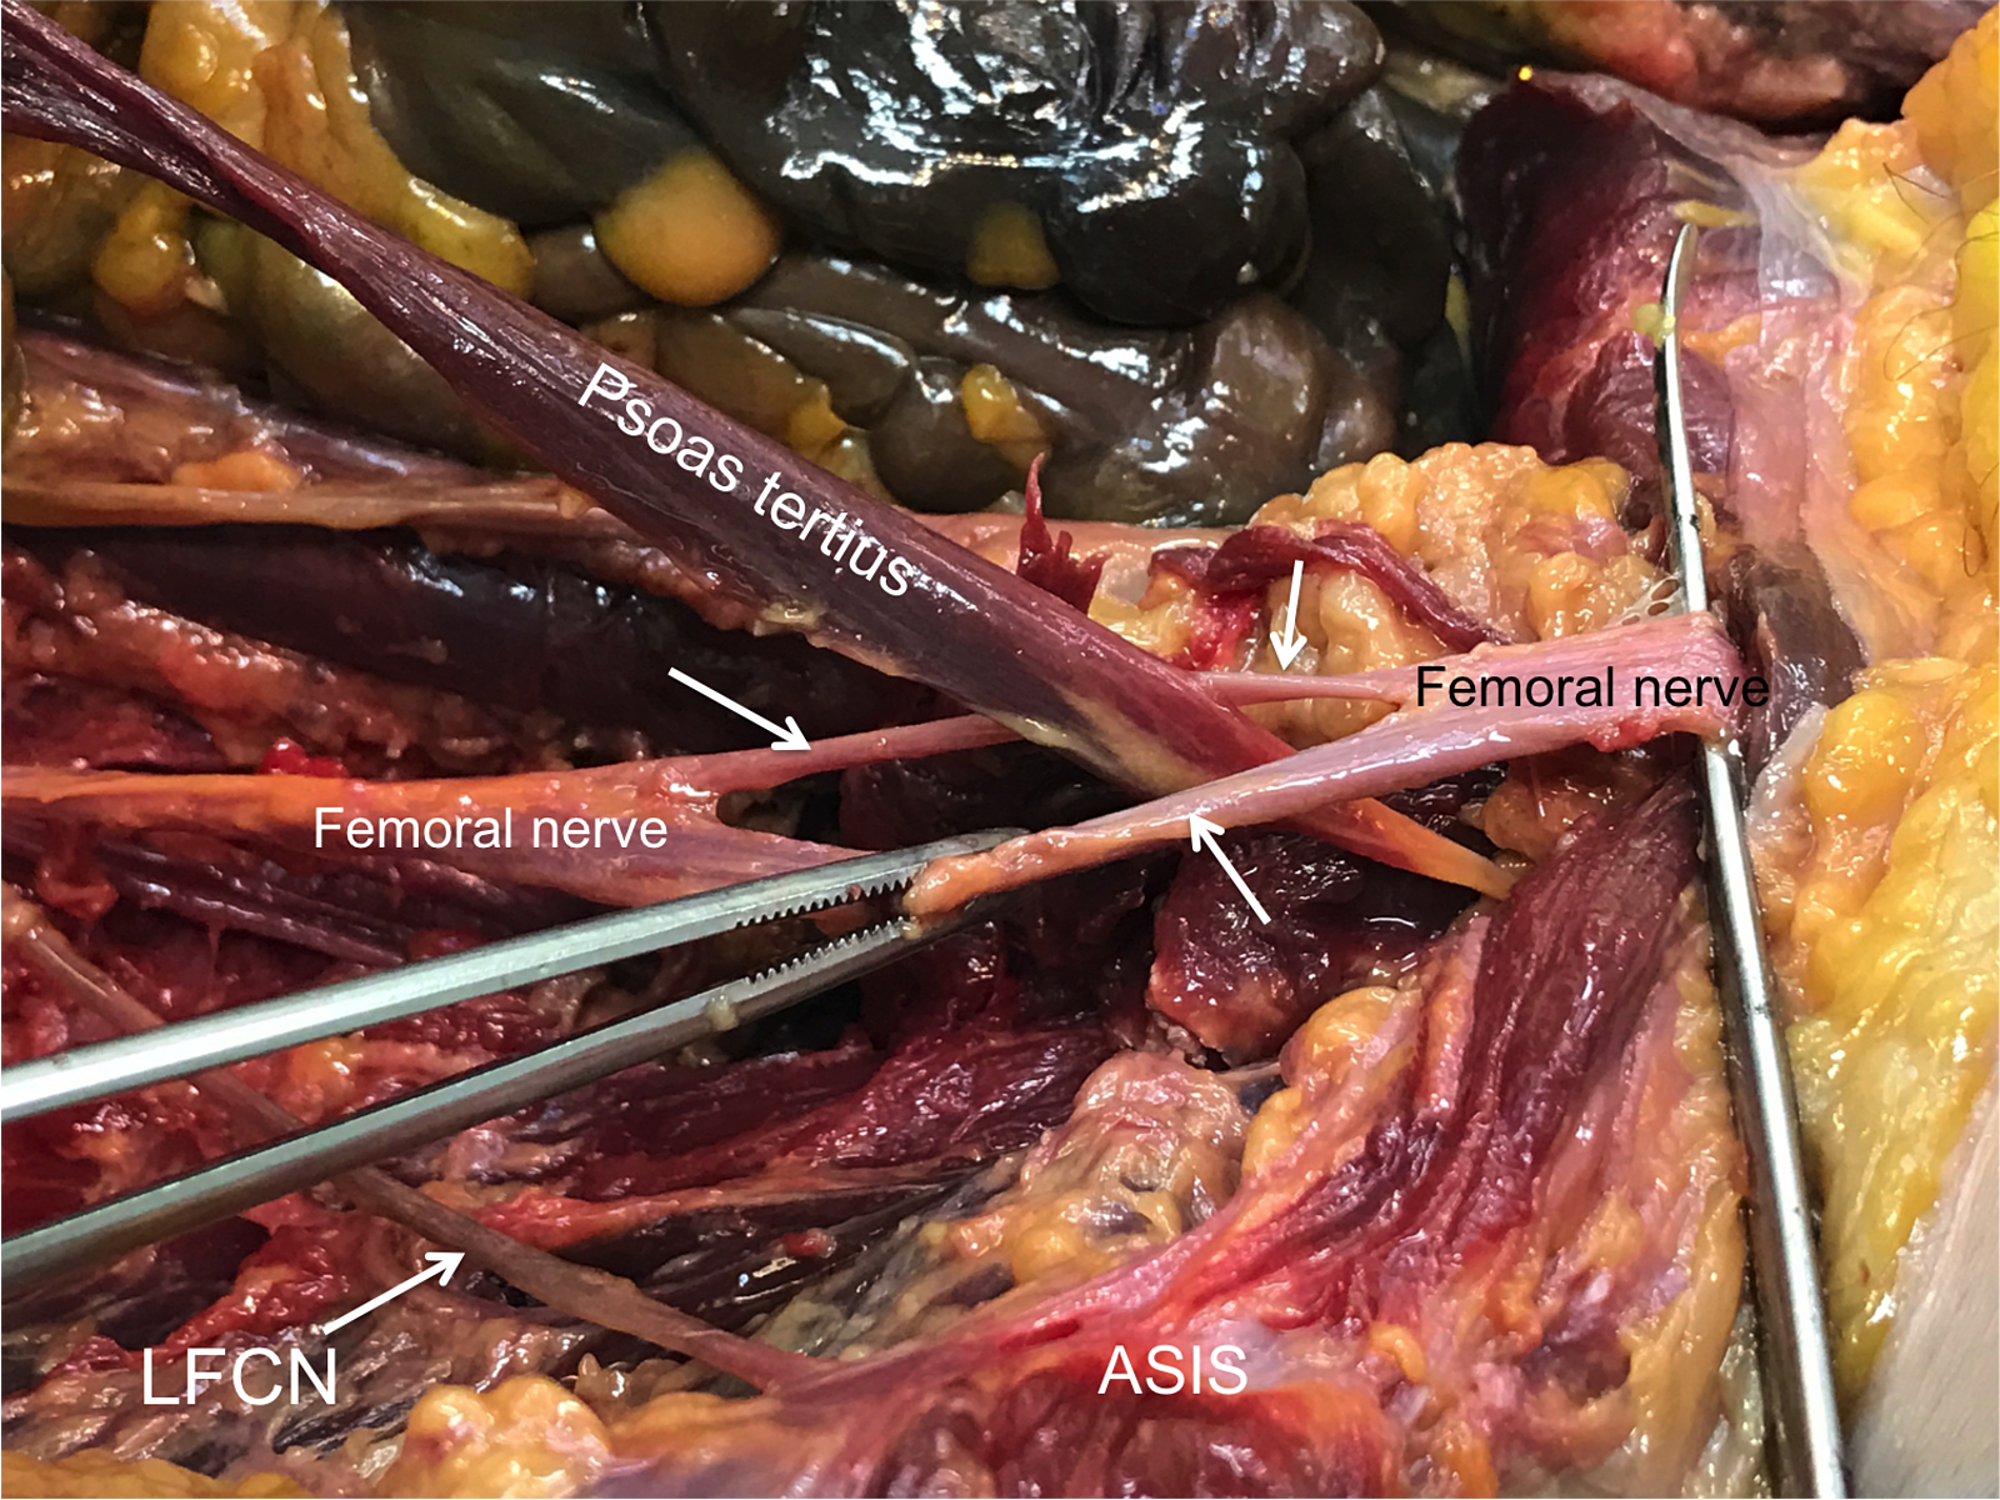 Cureus | Split Femoral Nerve Due to Psoas Tertius Muscle ...